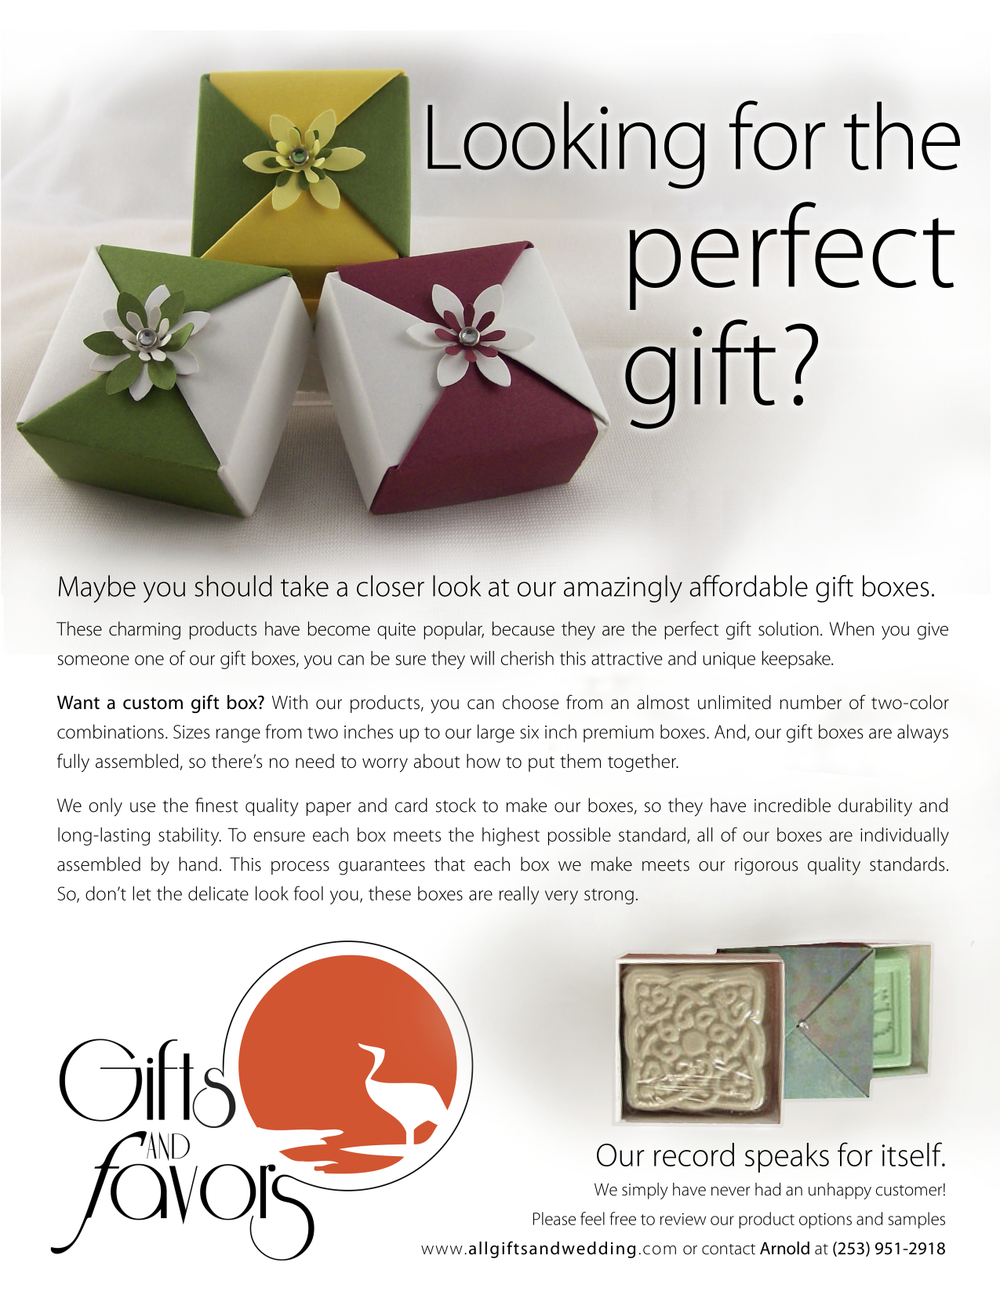 Gifts and Favors One Sheet Advertisement.jpg